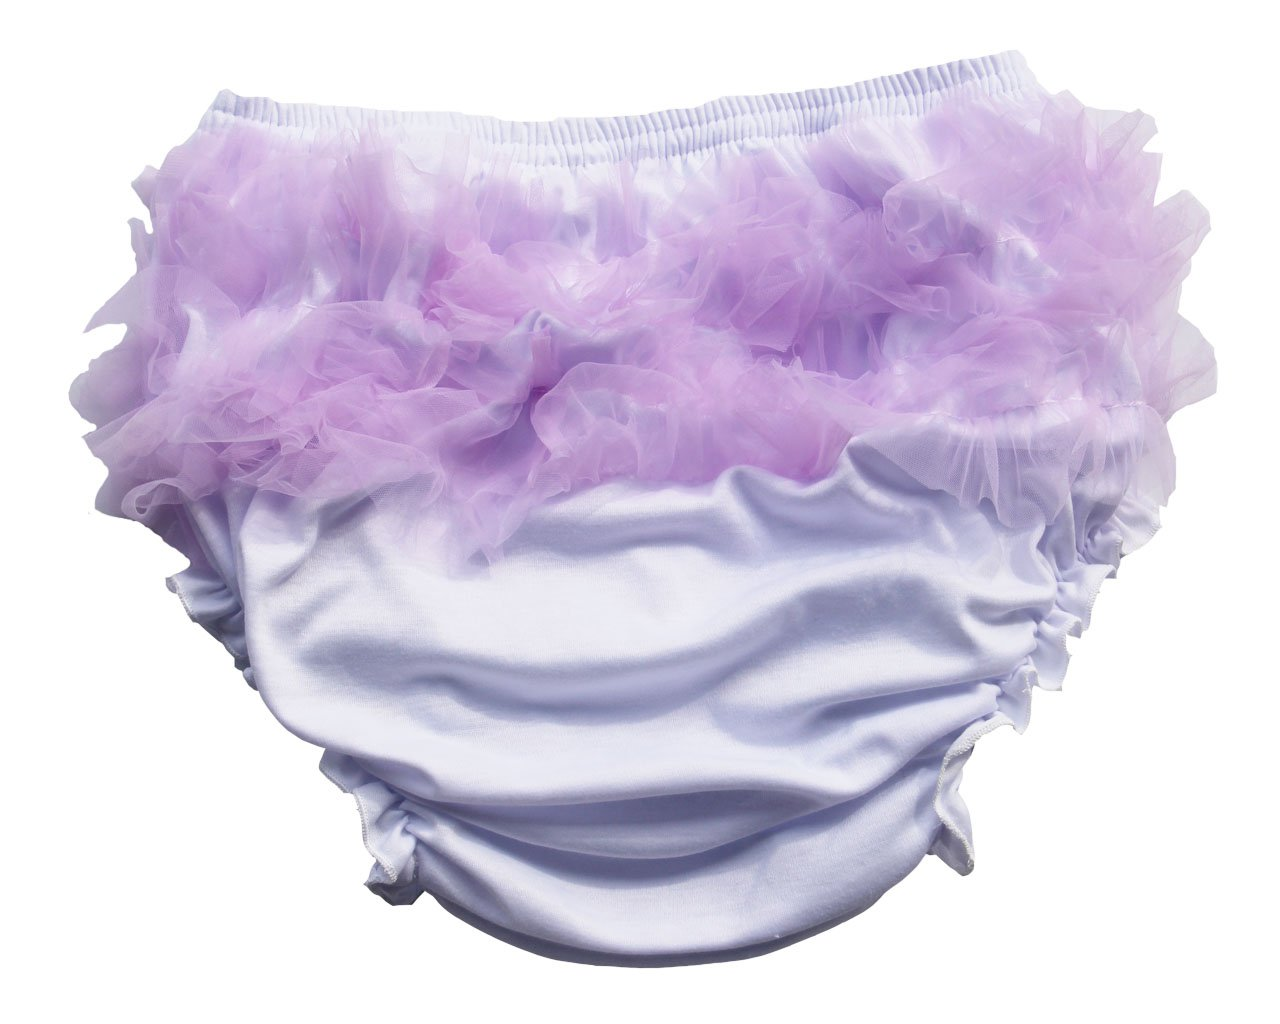 Haian ABDL Girls Ruffle Panties Chiffon Bloomers Diaper Cover (Medium, White & Purple) Lang Kee